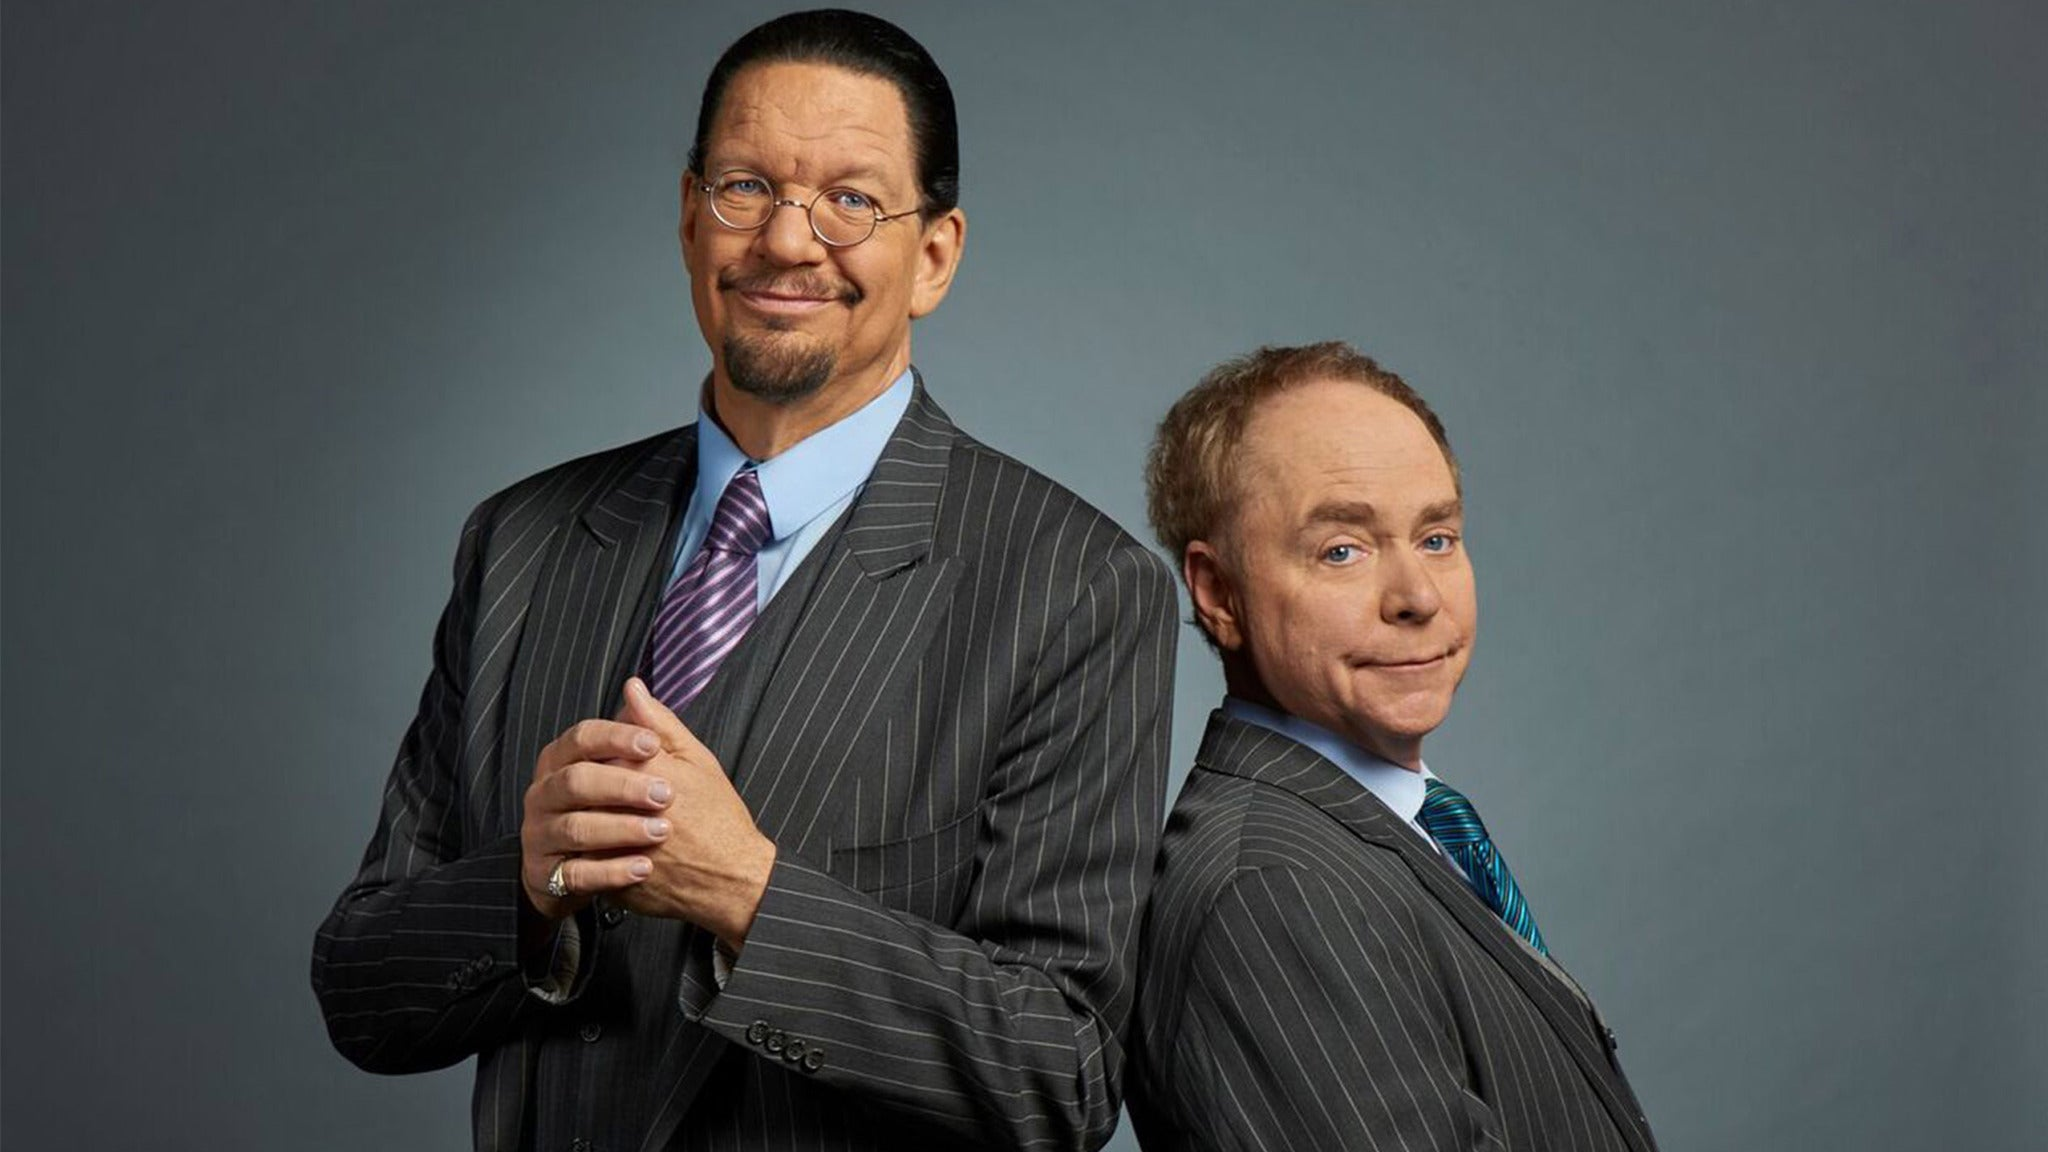 Penn & Teller at Caesars Atlantic City